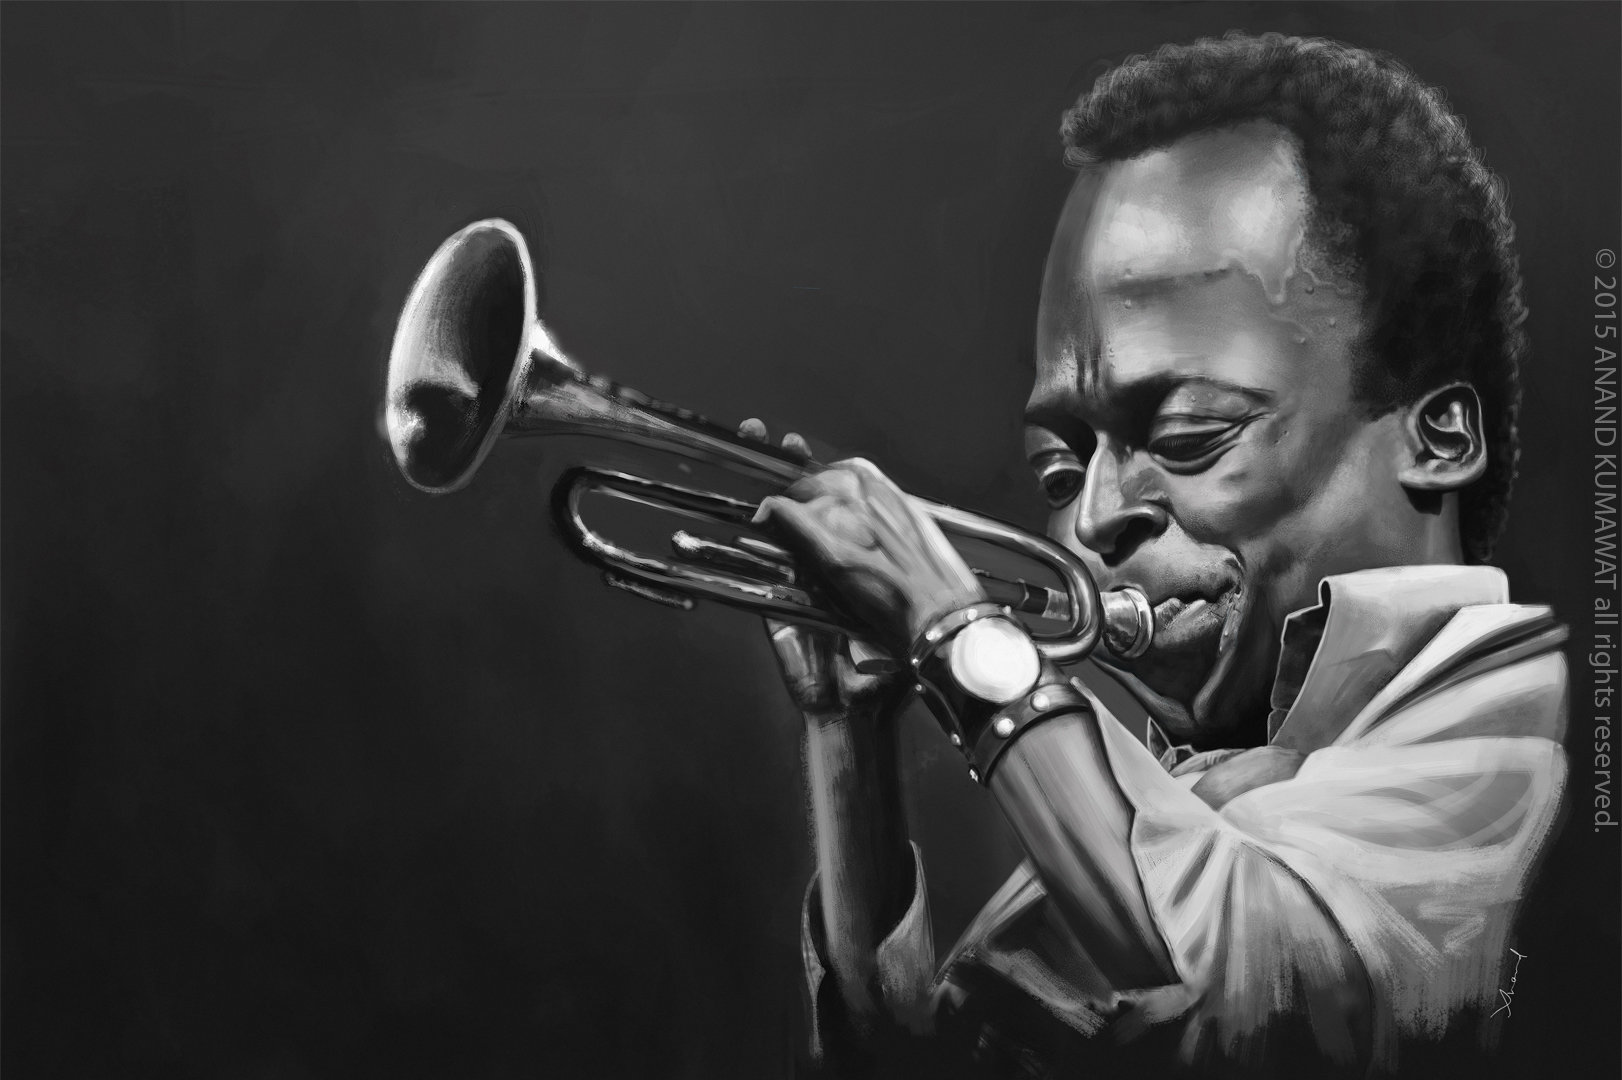 miles davis youtube - HD 1622×1080